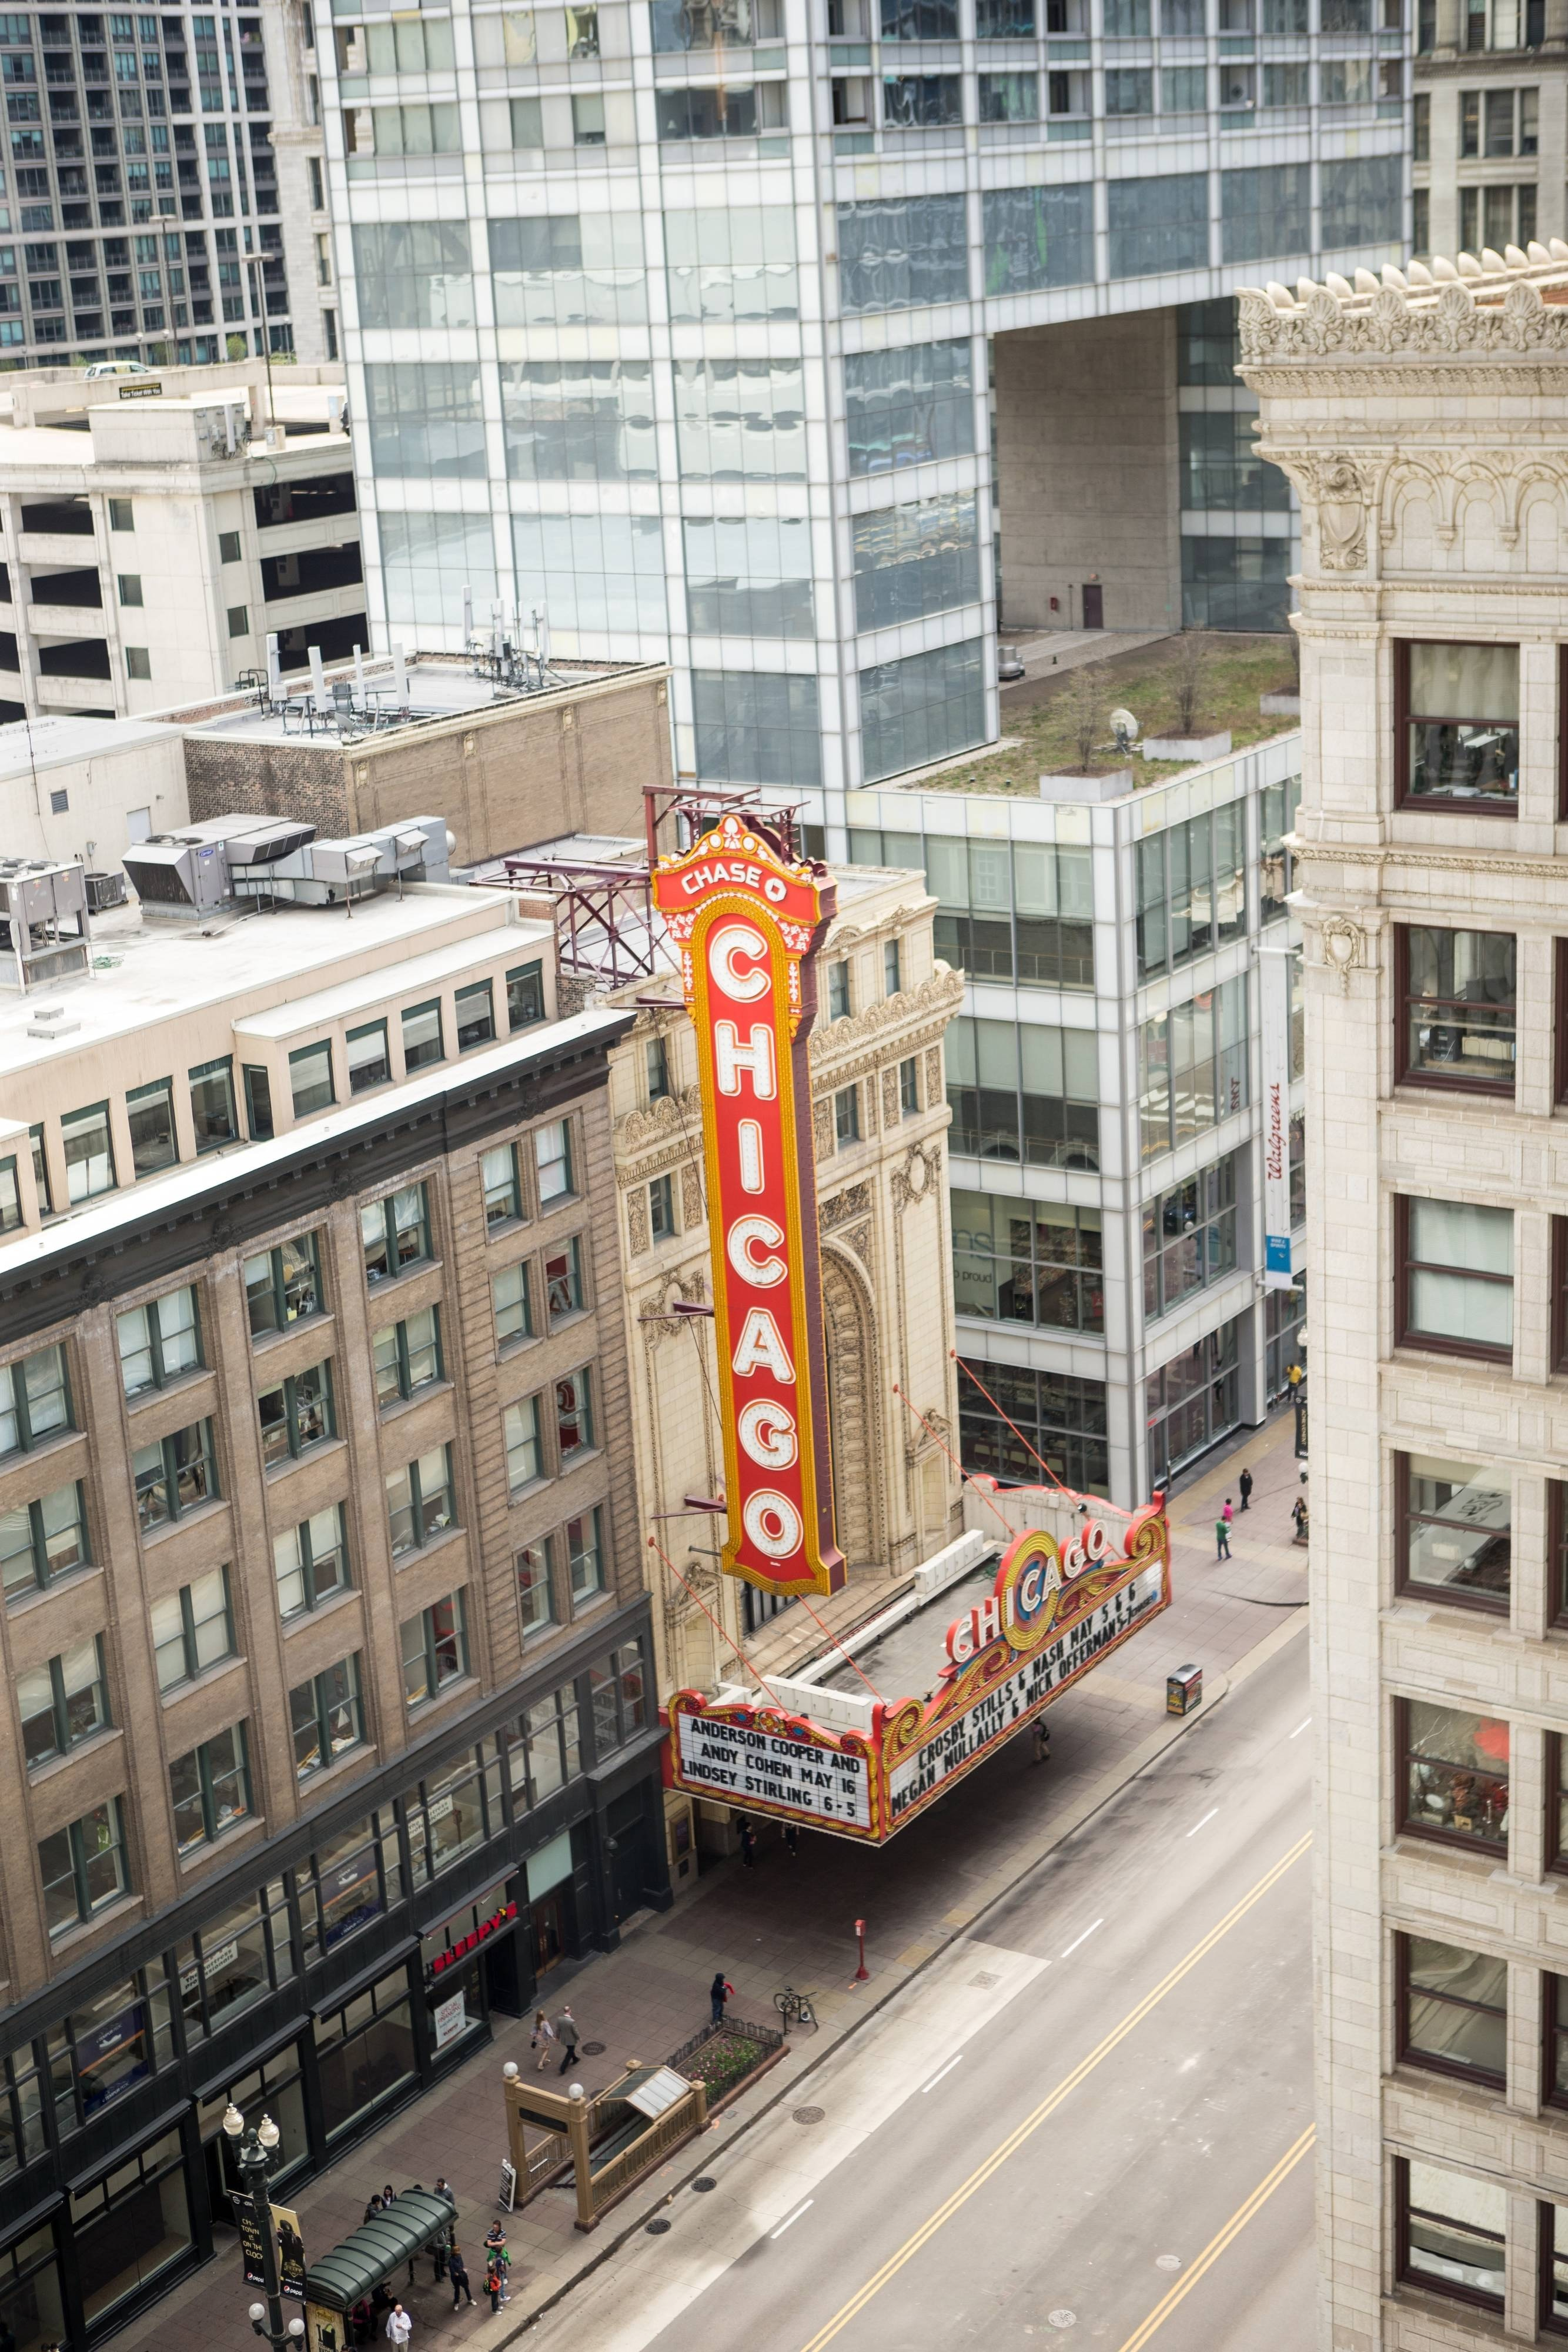 Chicago hotel Room with View